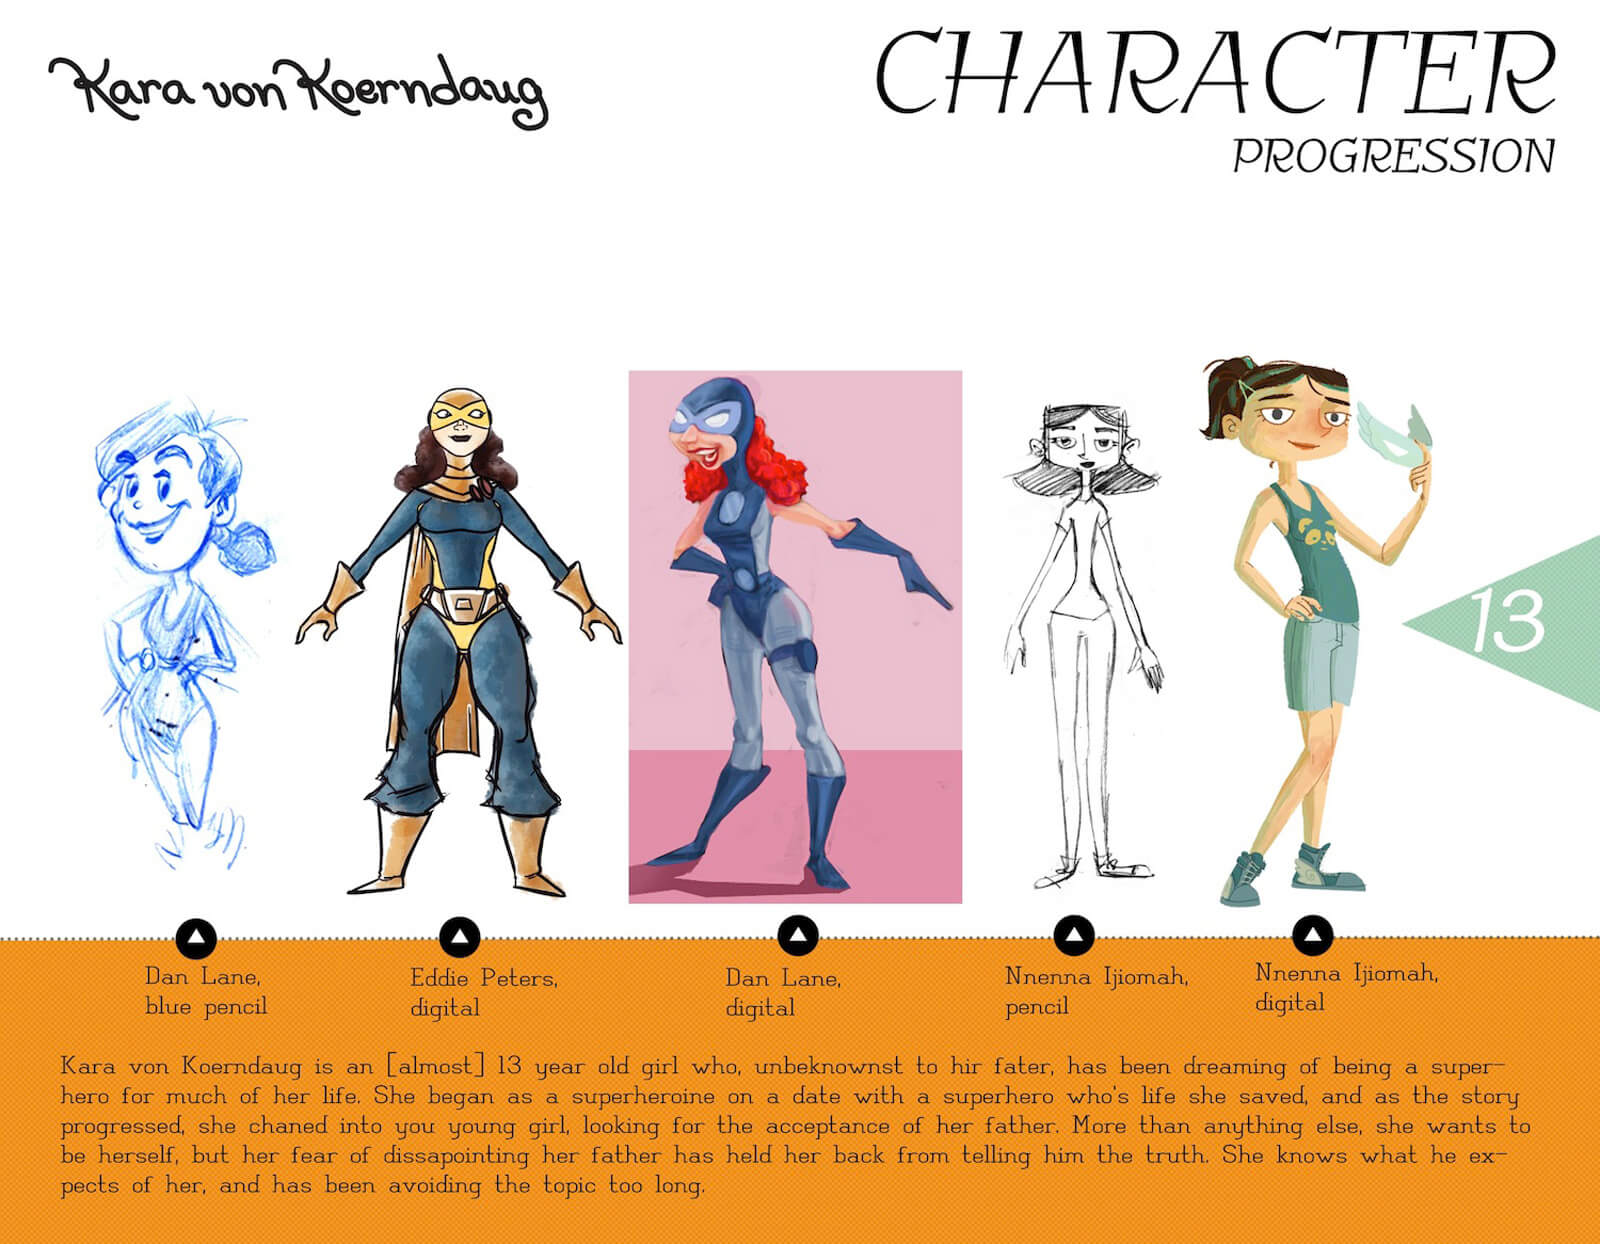 Character progression slide for the character of Kara von Koerndaug, from sketches, to color drawings, to final design